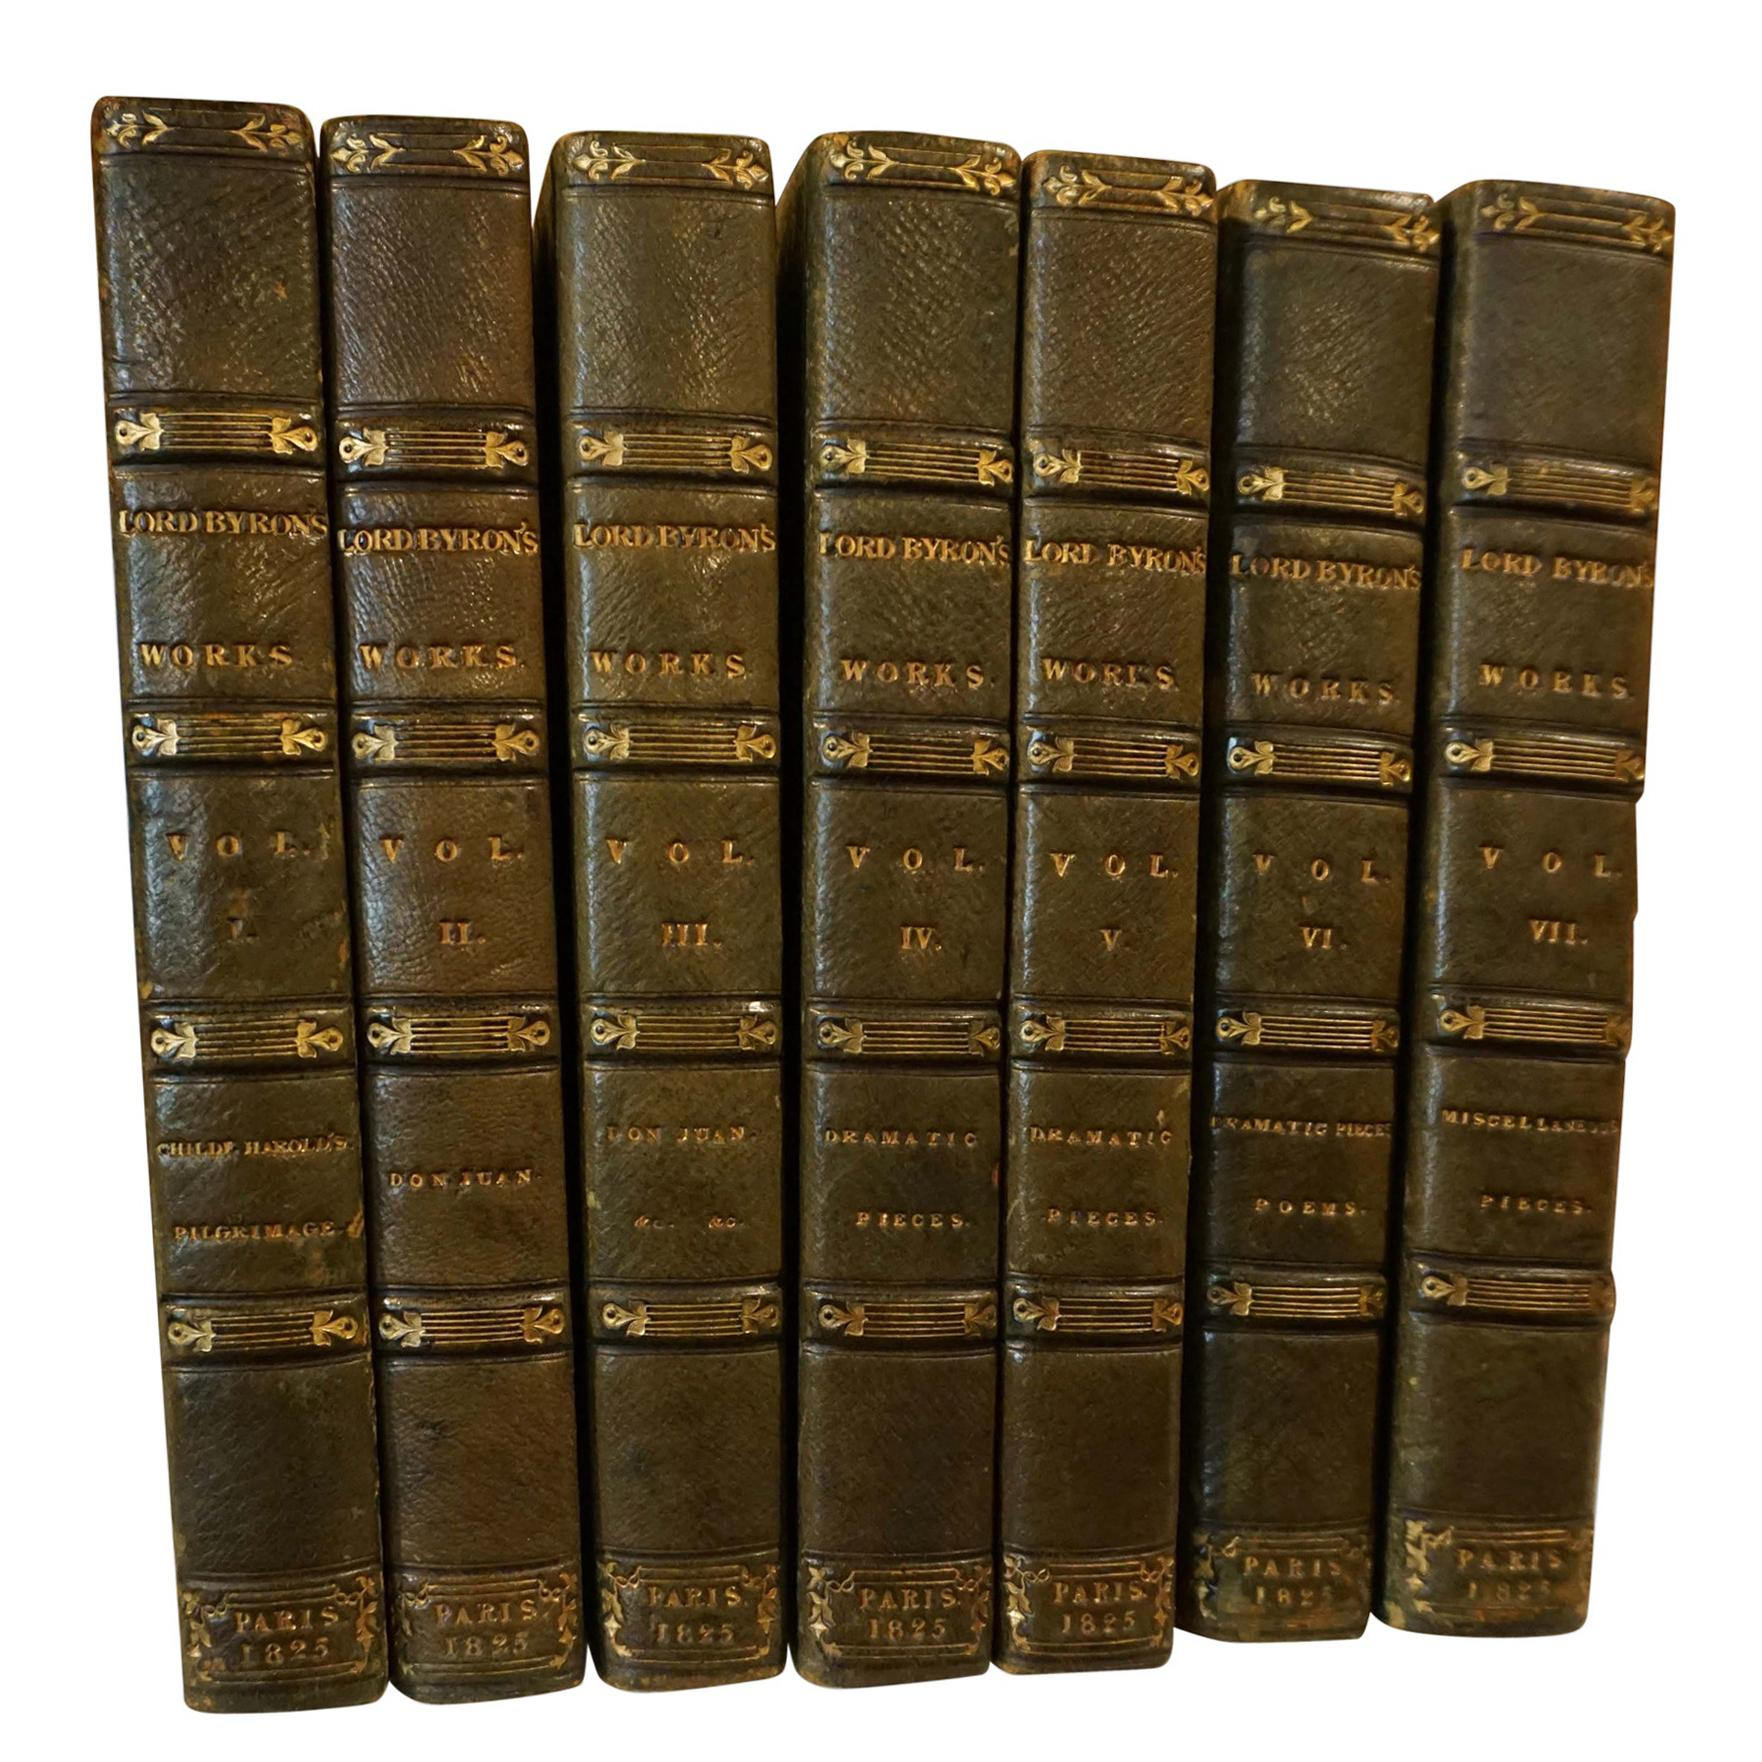 The Works of Lord Byron Bound in Green Morocco Leather with Gilt Tooling